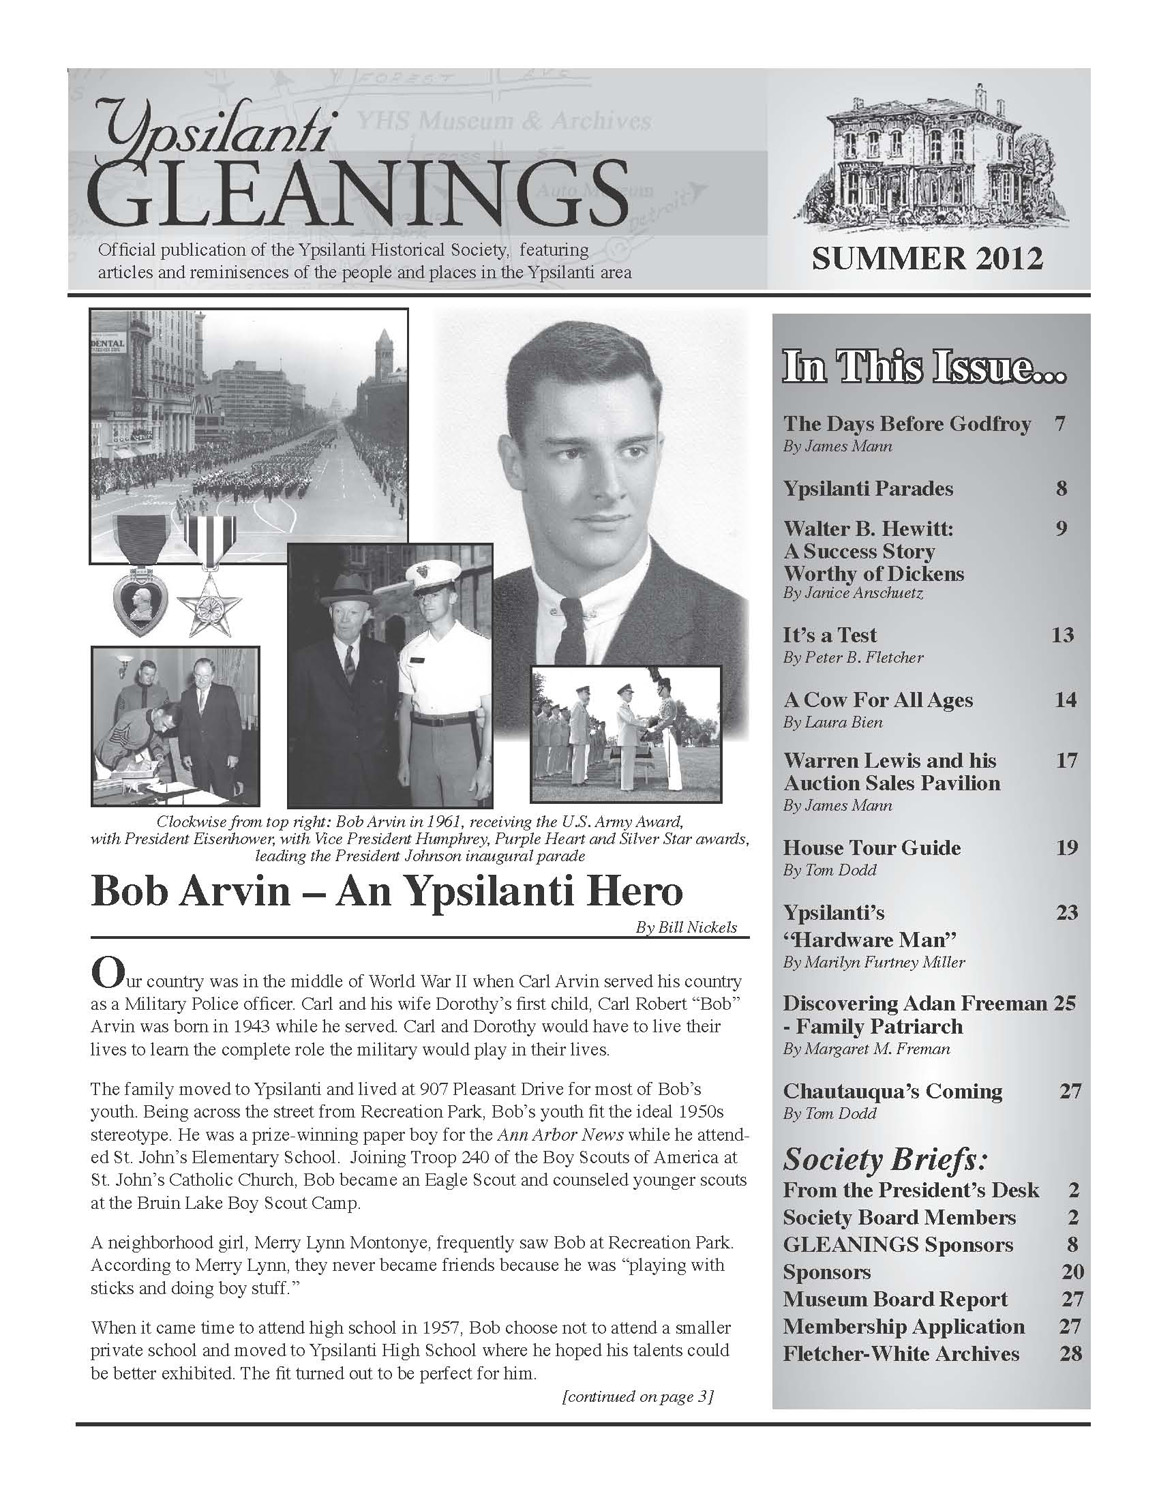 Ypsilanti Gleanings, Summer 2012 image